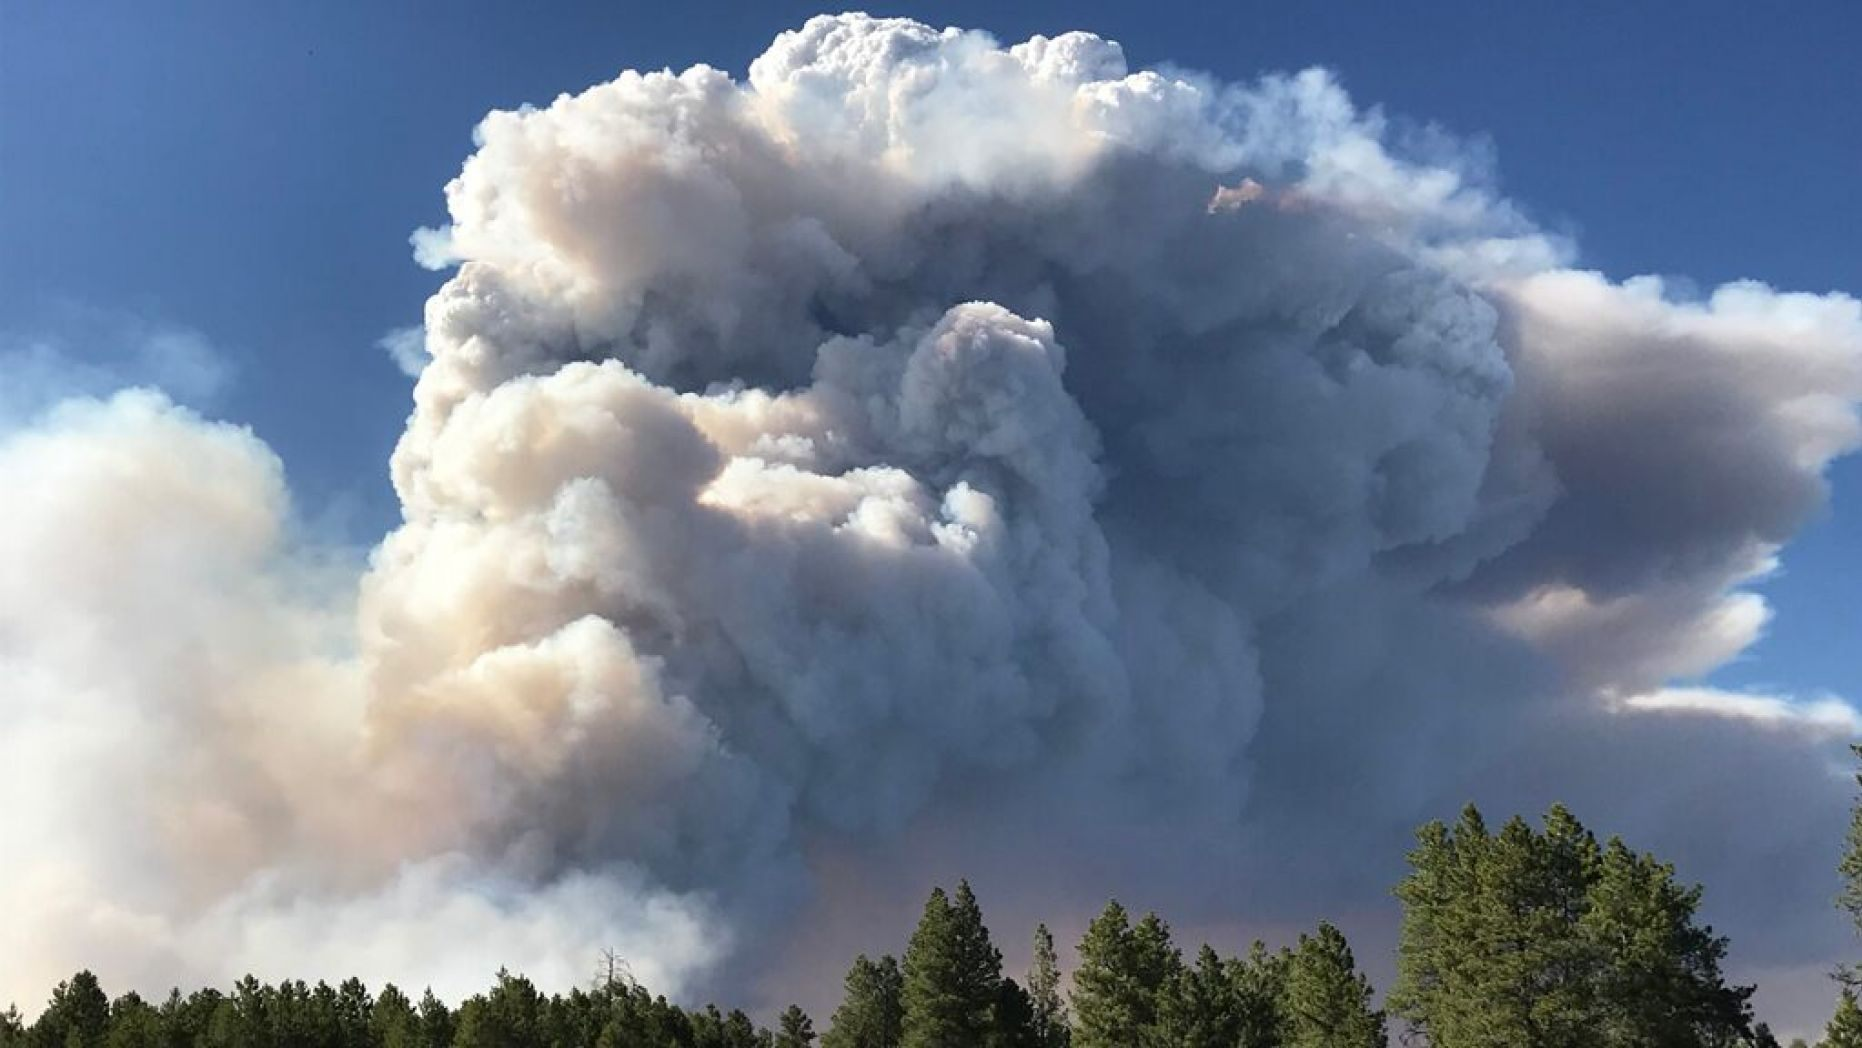 The Magnum Fire burning in northern Arizona has forced the closure of the North Rim of the Grand Canyon National Park.